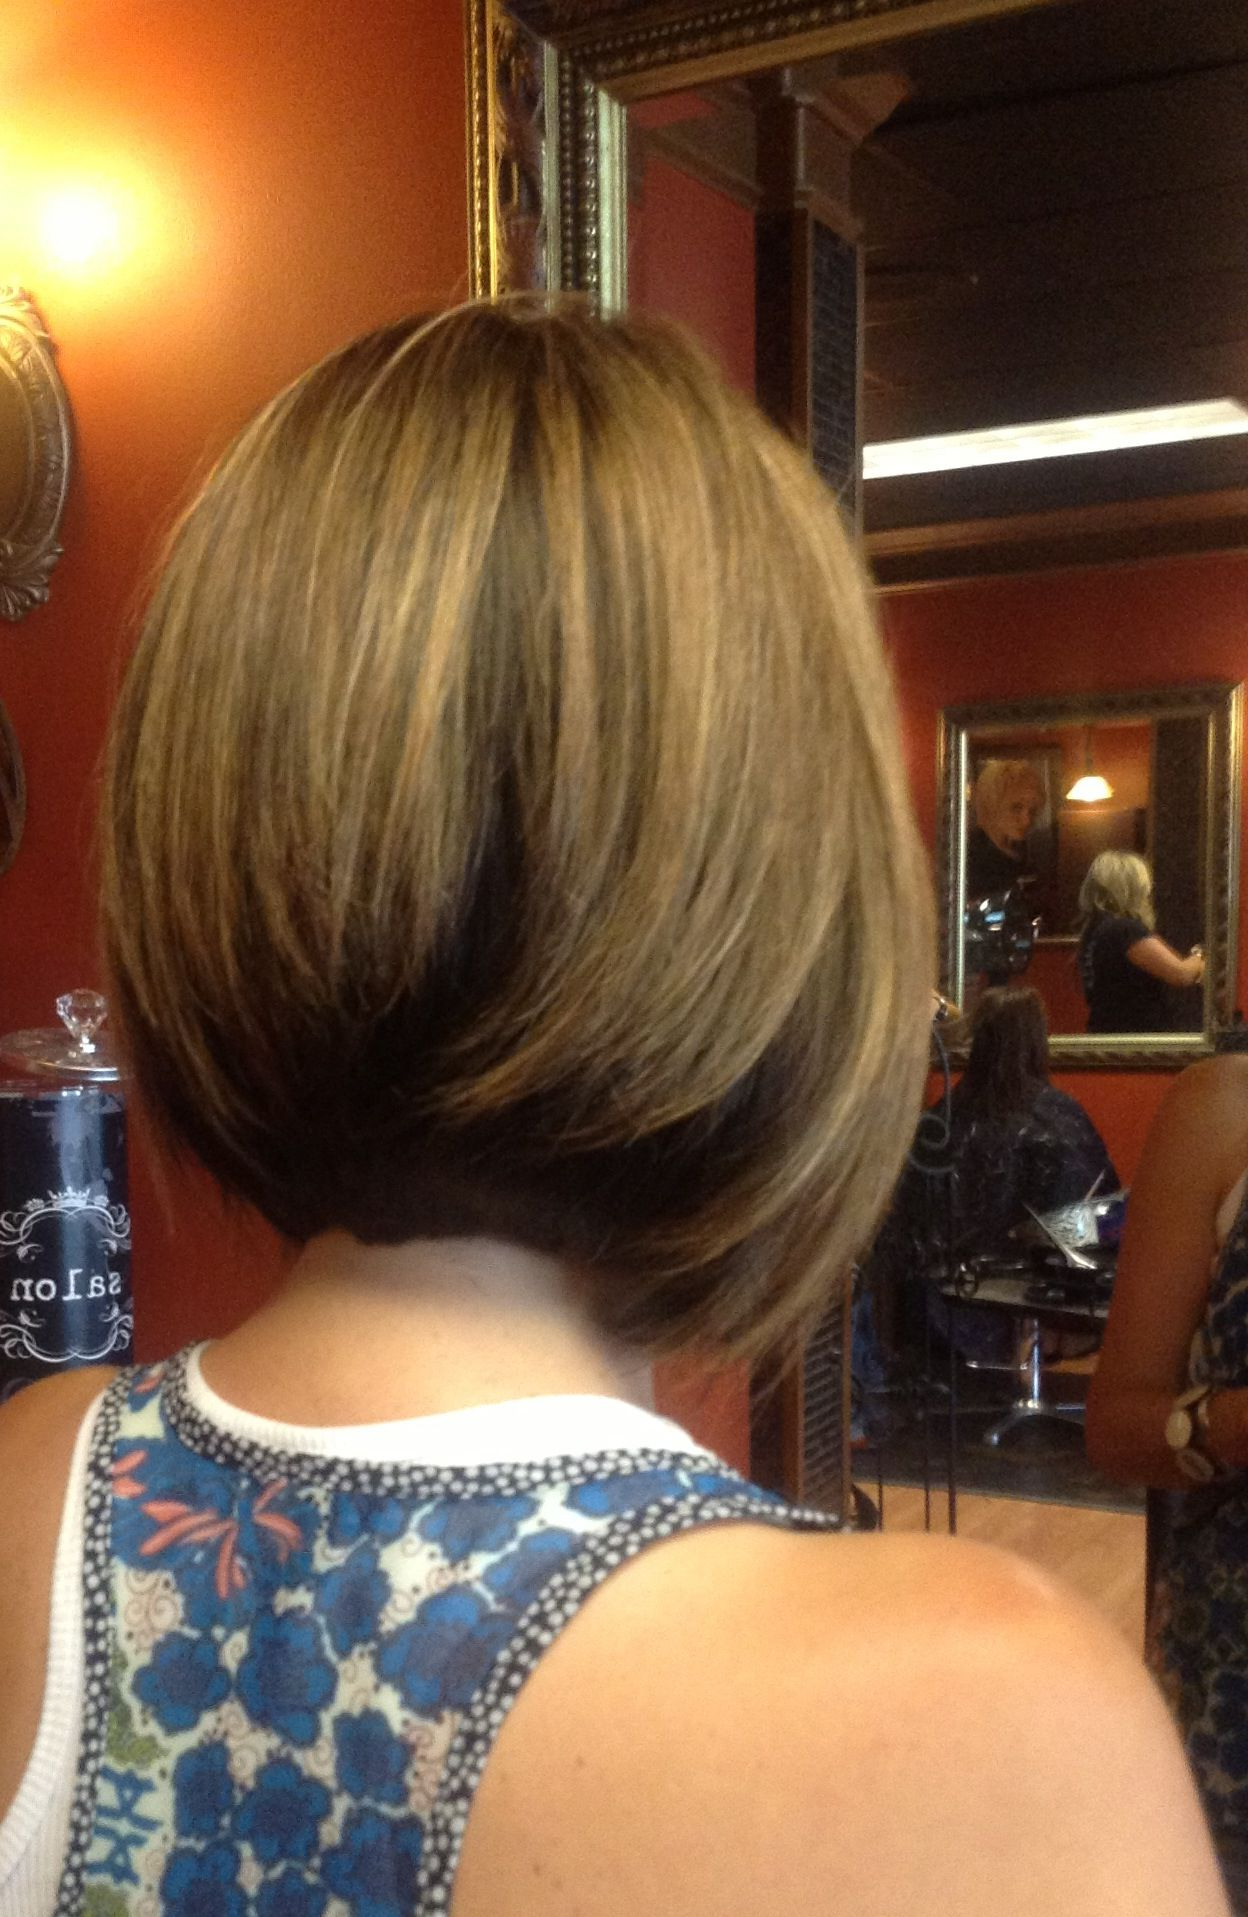 Long Bob Haircuts Back View | All Things Hair | Pinterest | Hair Within Inverted Short Haircuts (View 18 of 25)